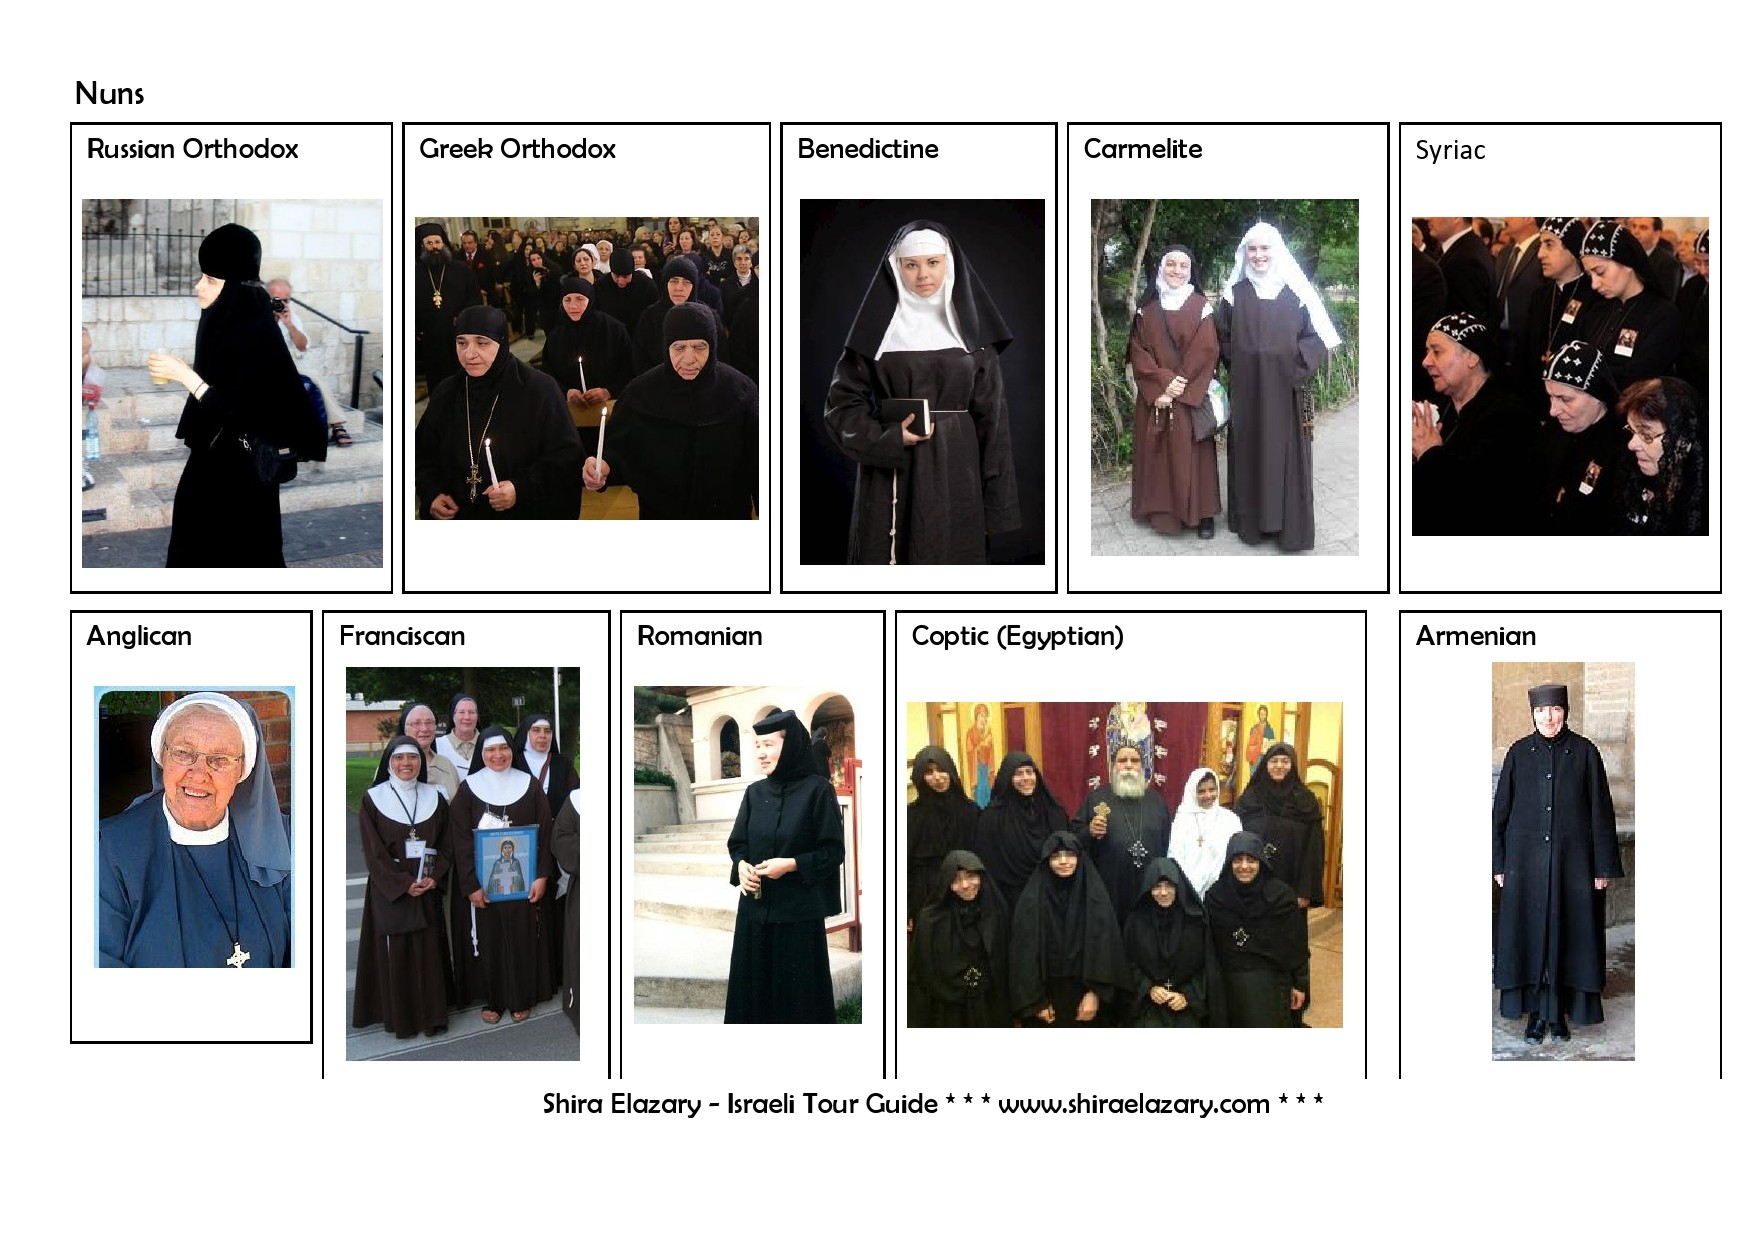 Images of nuns from different denominations, demonstrating their typical attire